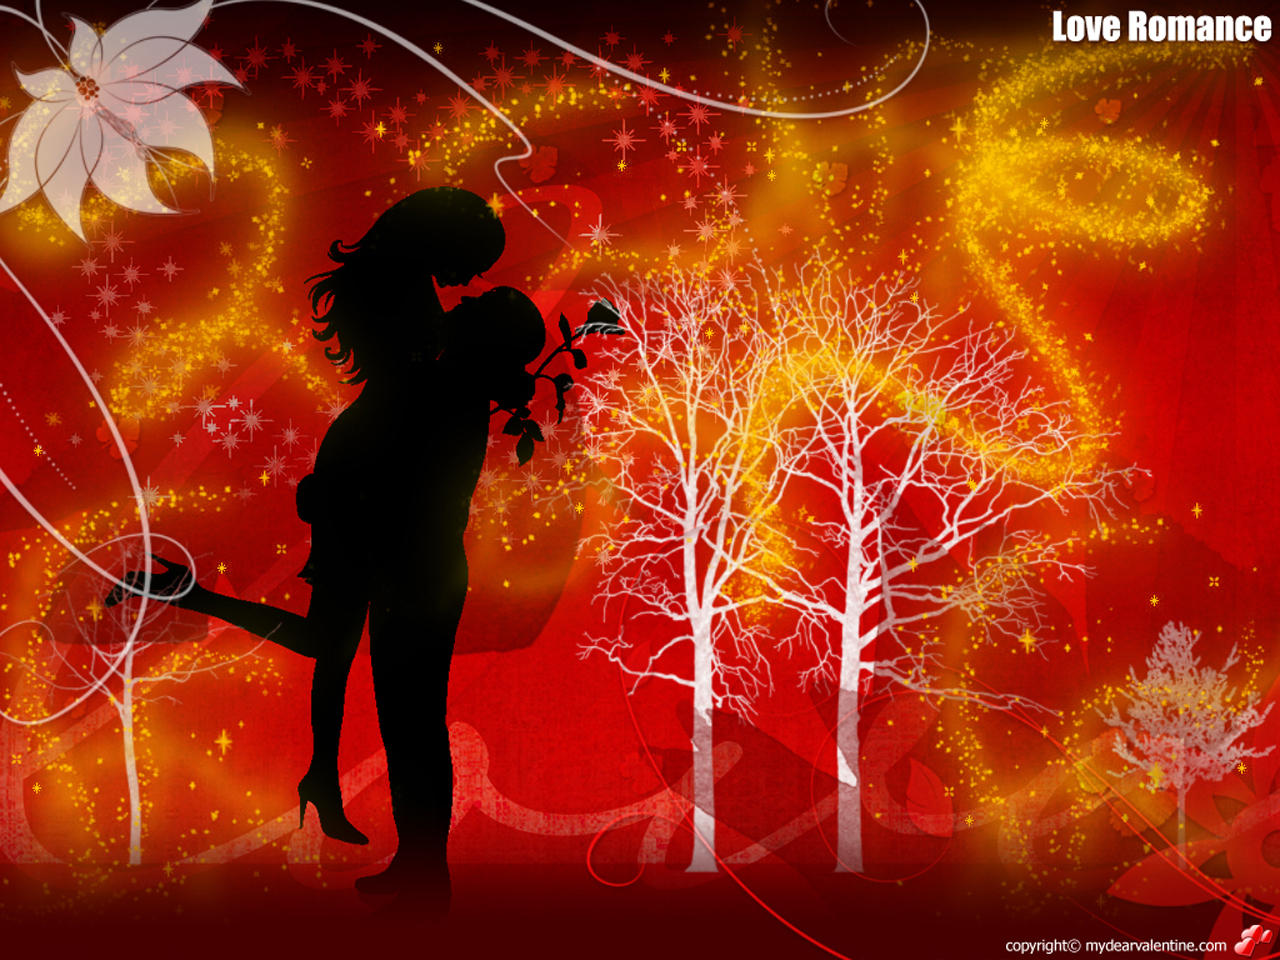 80 Desktop Wallpapers Its All About Love Romance and Heart 1280x960